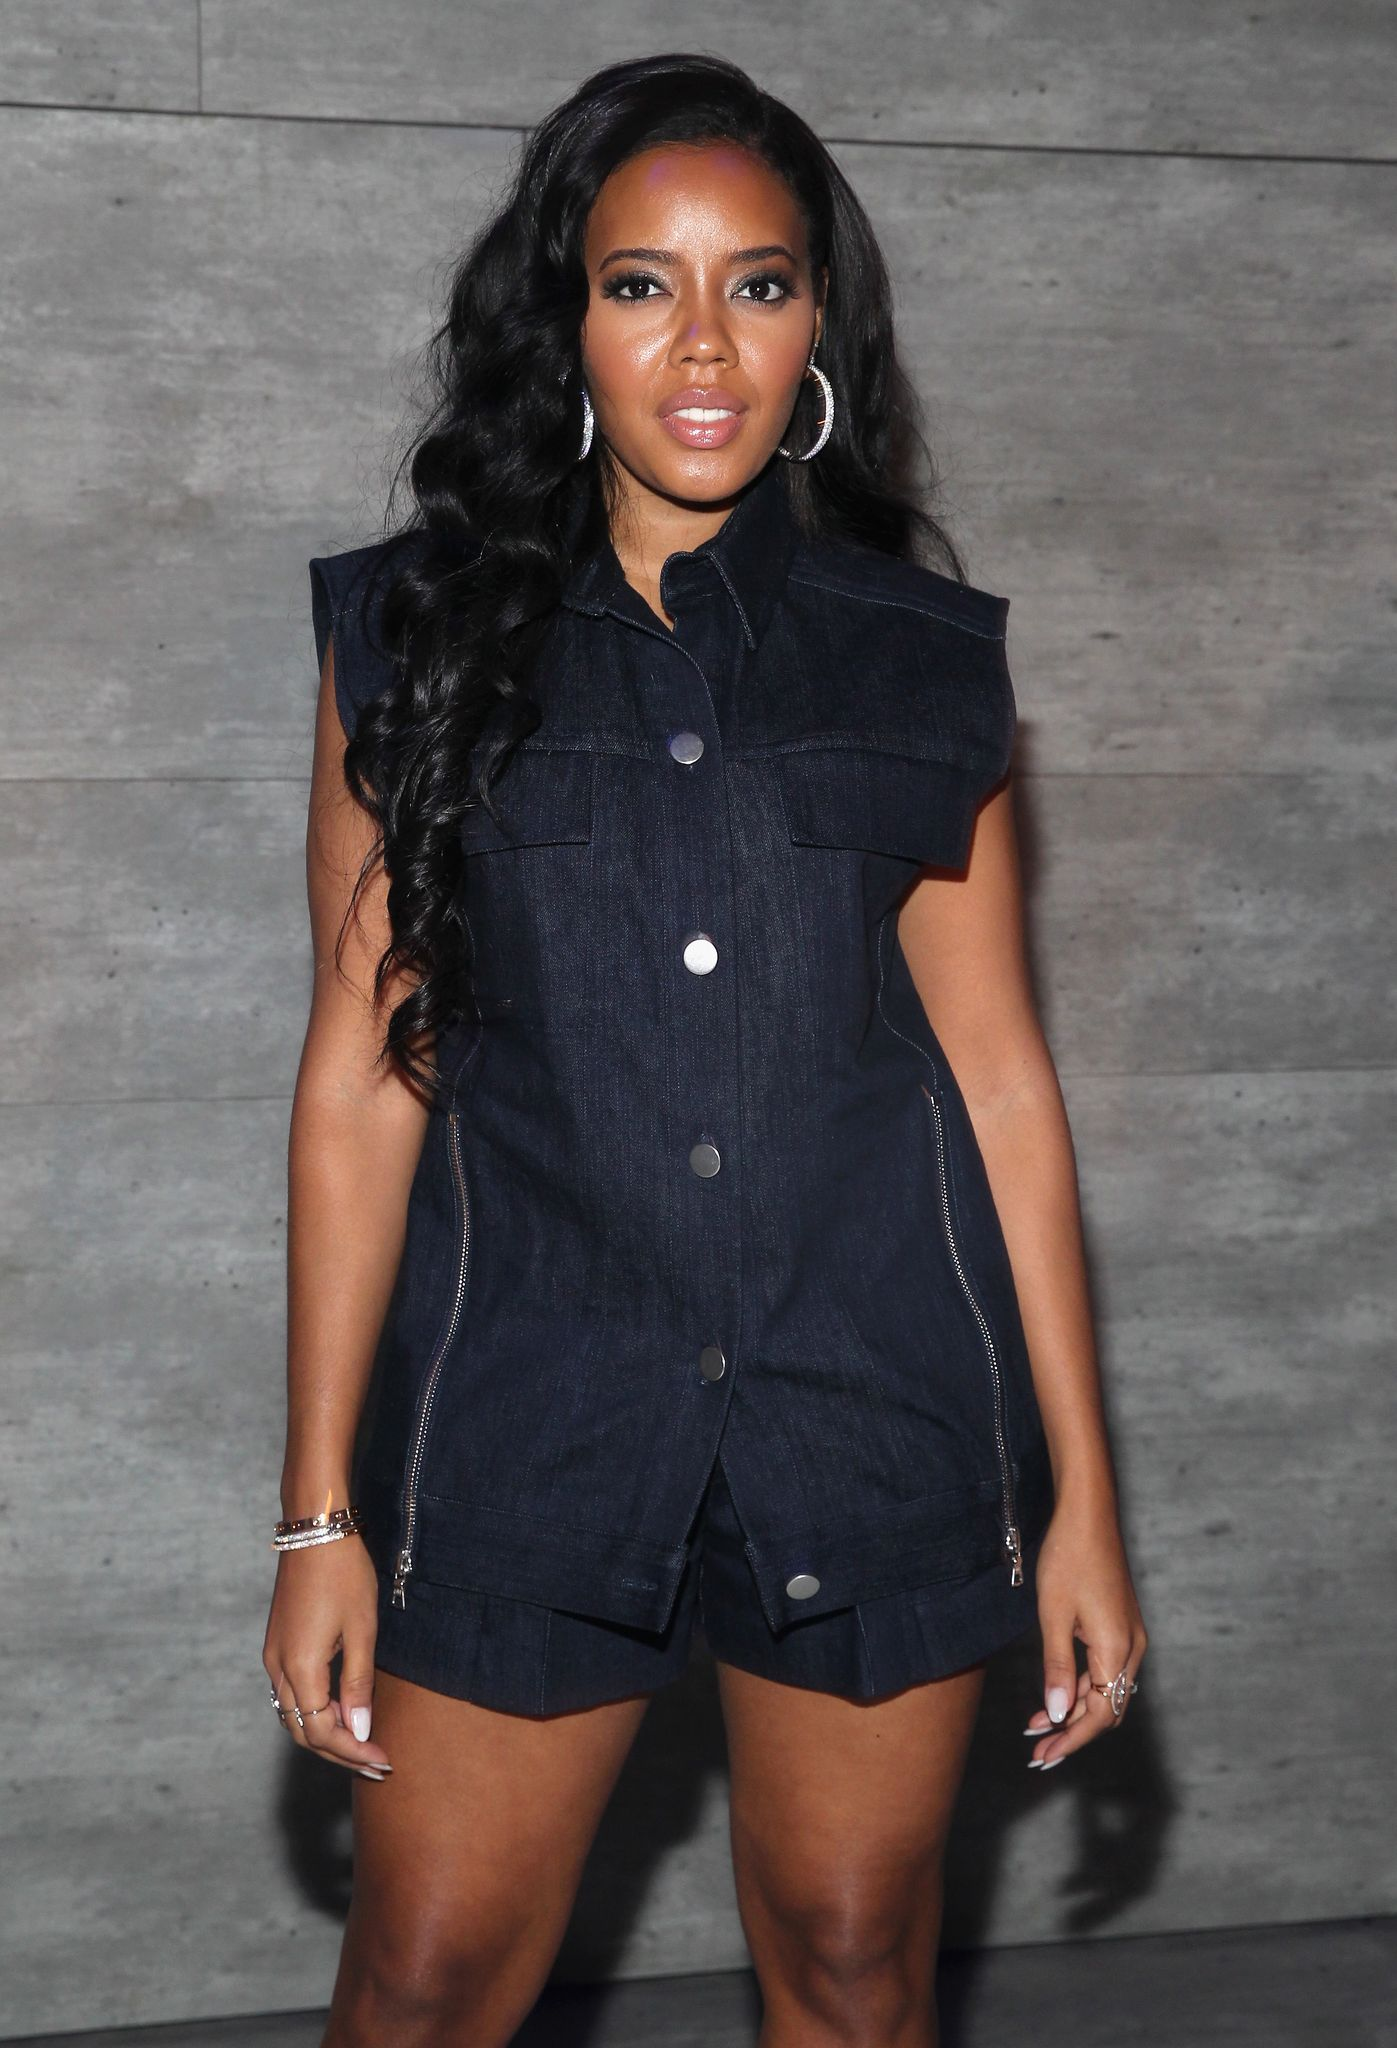 Designer Angela Simmons attending  the Charlotte Ronson fashion show during Mercedes-Benz Fashion Week Fall on February 13, 2015 in New York. | Photo: Getty Images